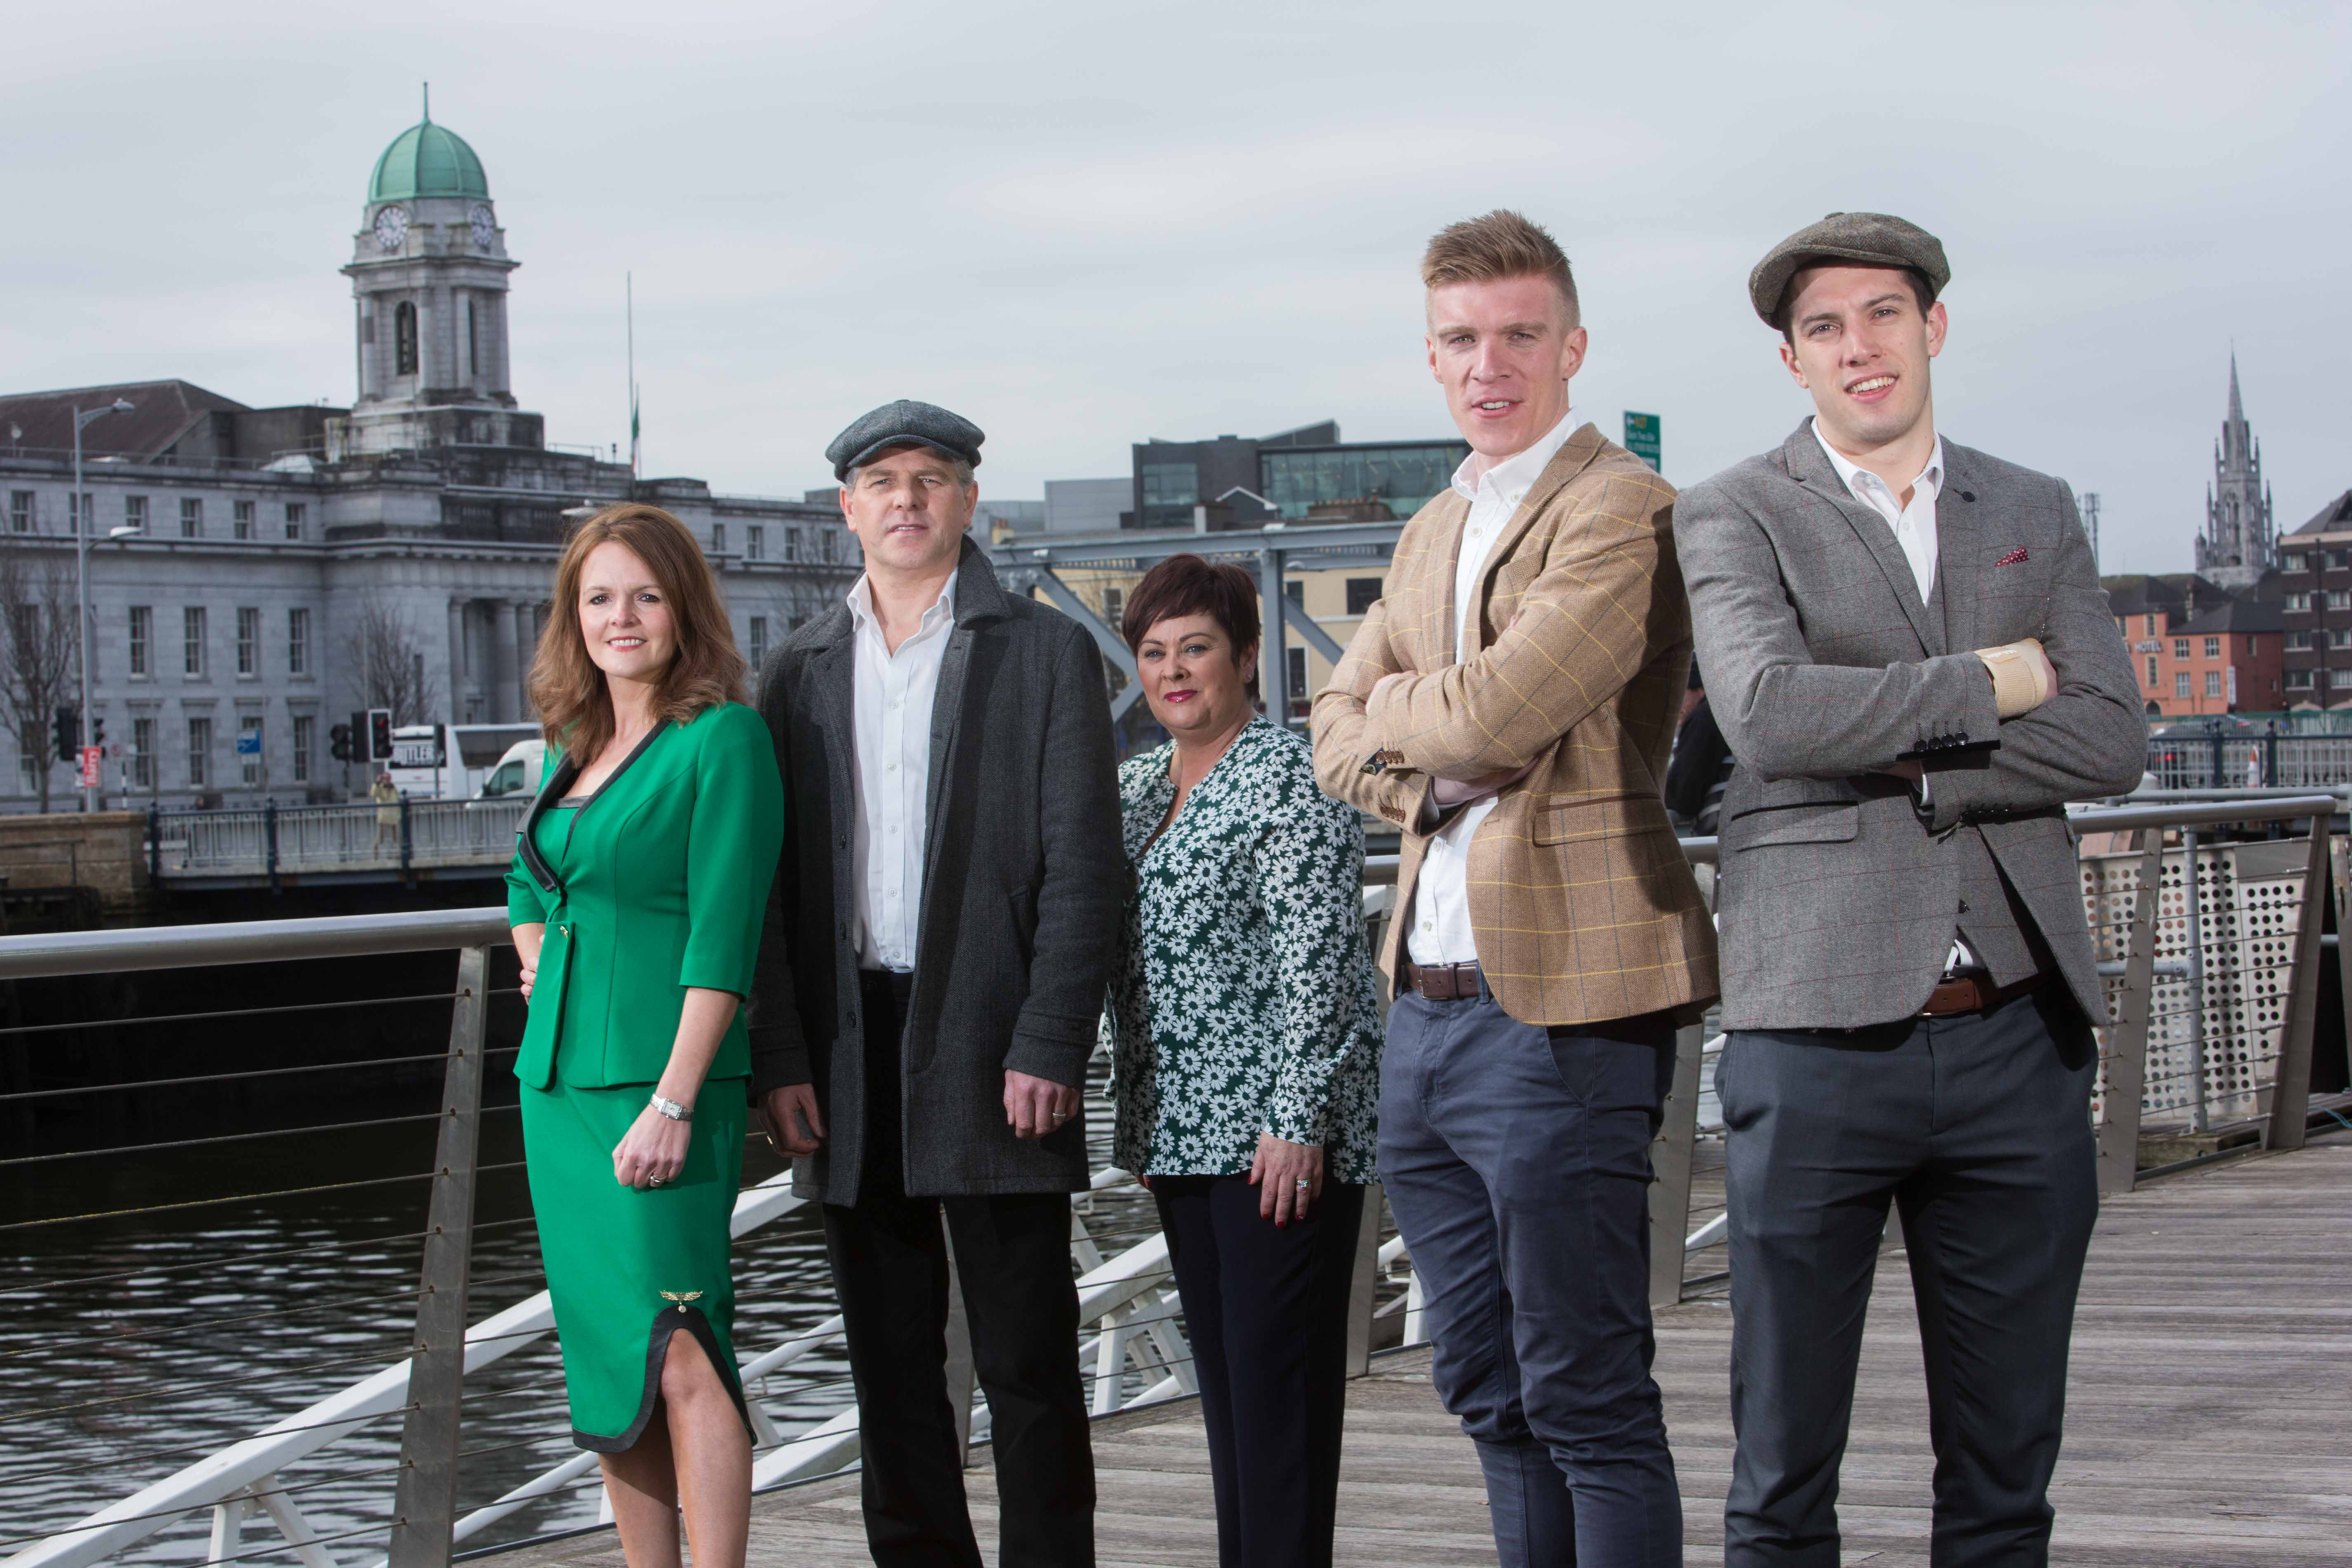 '#1916 Fashions' will feature at a Cork Charity Fashion Show #EasterRising